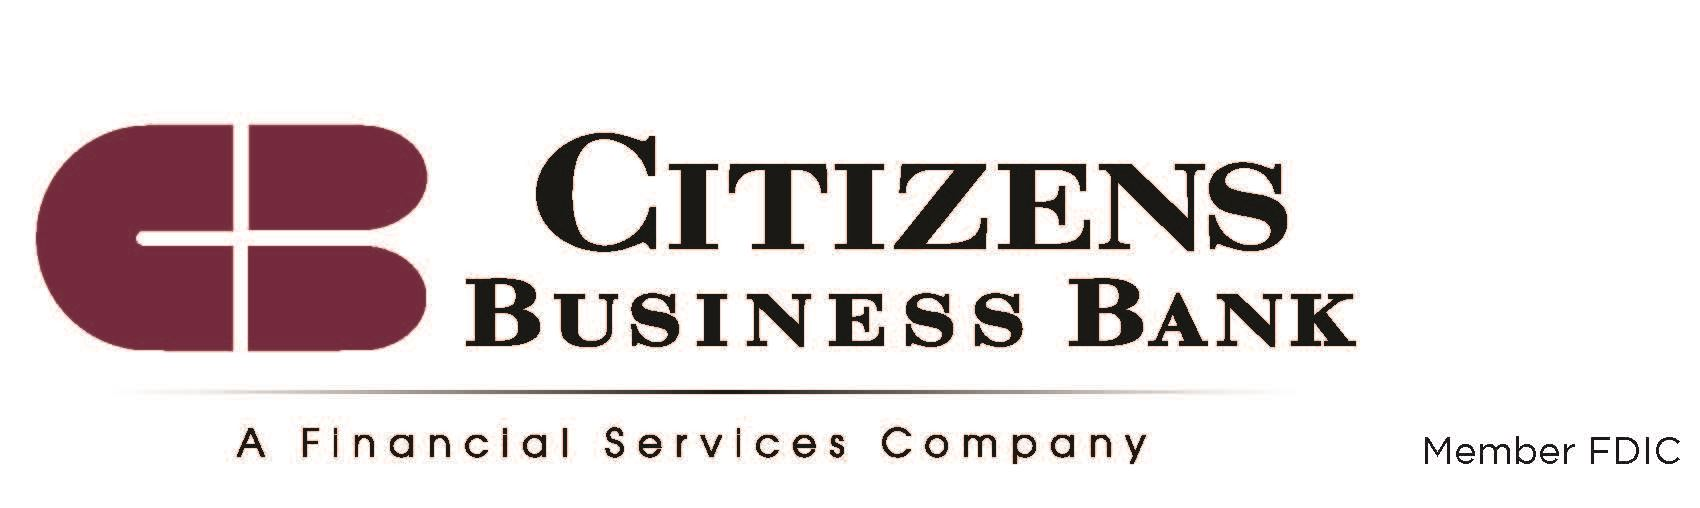 Citizens Business Bank_PrimaryLogo_CMYK with FDIC